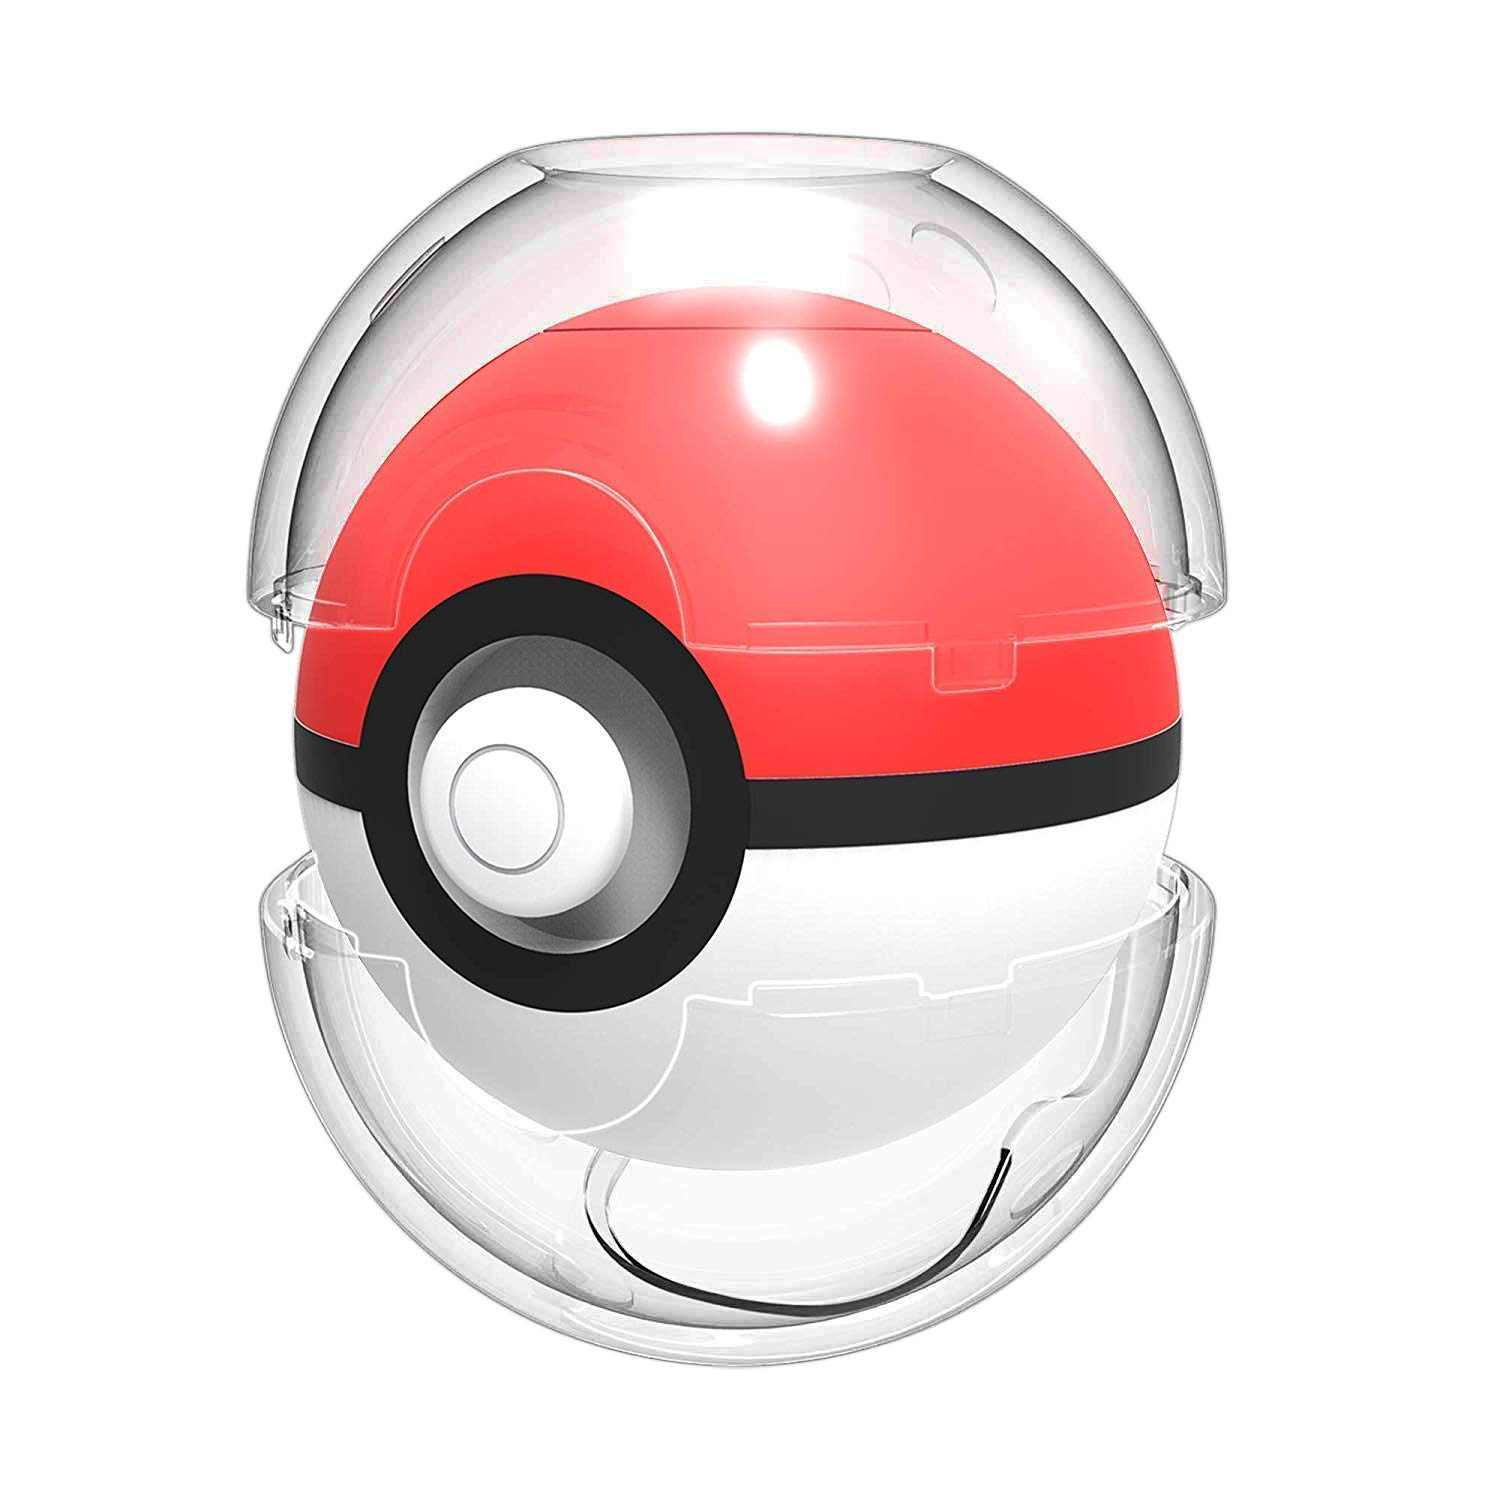 HEYSTOP Funda de Transporte Compatible Pokemon Poke Ball 2018 Plus, Funda Pprotectora de Viaje Portátil para Viaje de Pokeball para Nitendo Switch ...